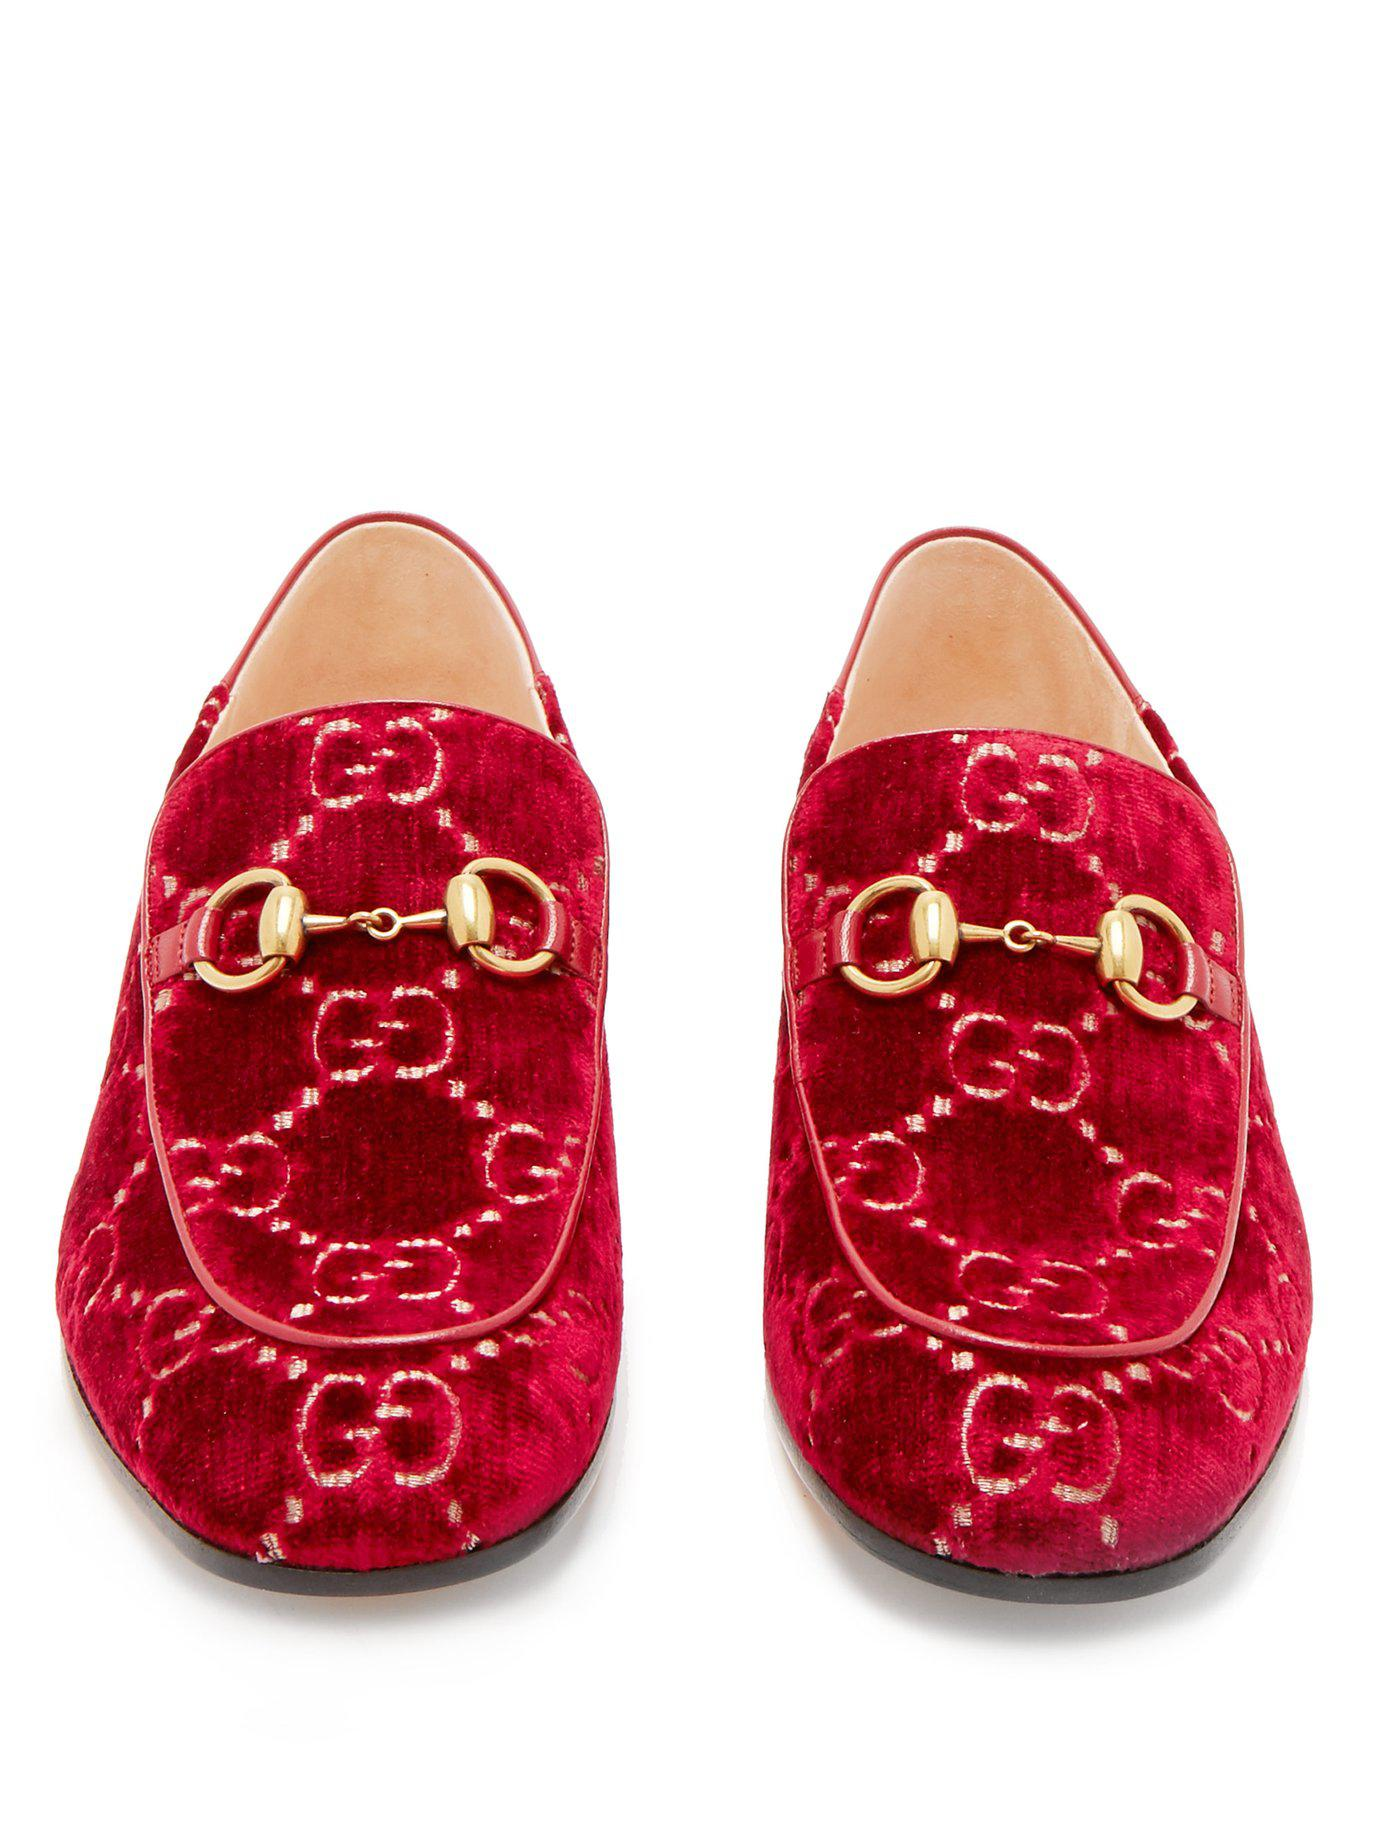 88cb4dcf511 Gucci - Red Mister Gg Crystal Embellished Velvet Loafers - Lyst. View  fullscreen